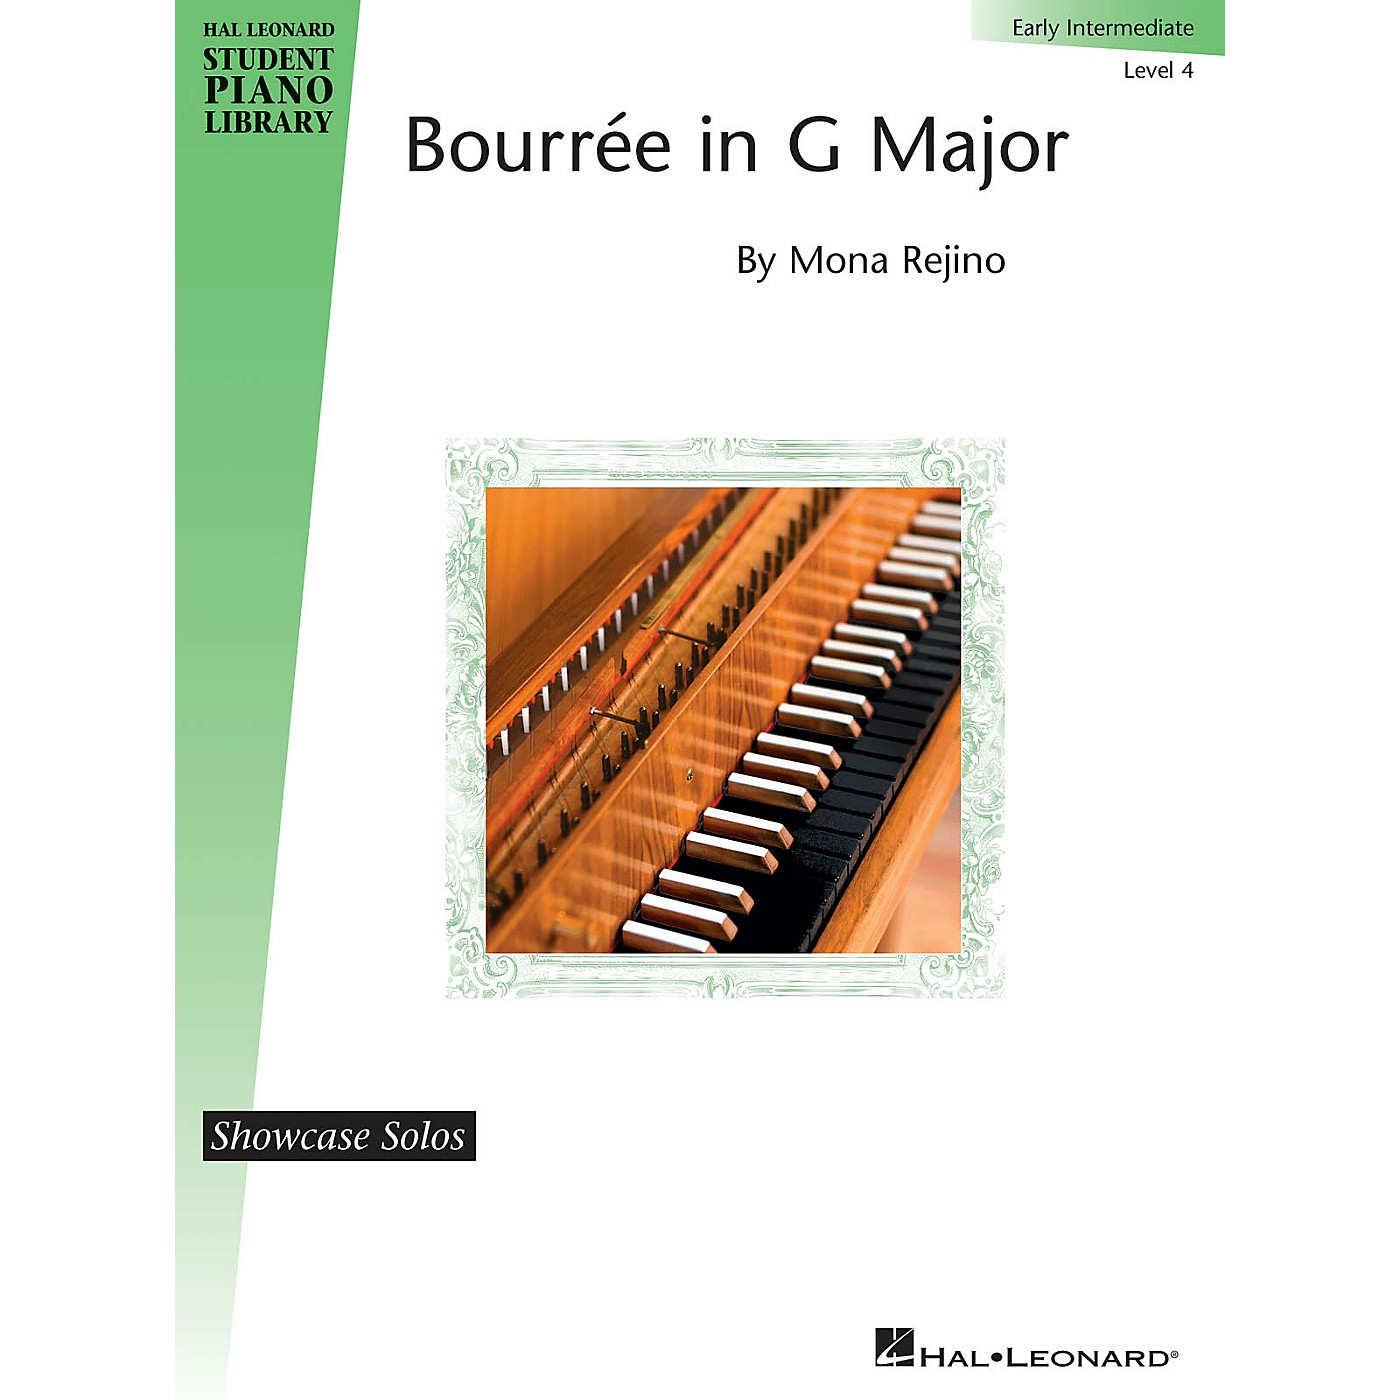 Hal Leonard Bourrée in G Major Piano Library Series by Mona Rejino (Level Early Inter) thumbnail